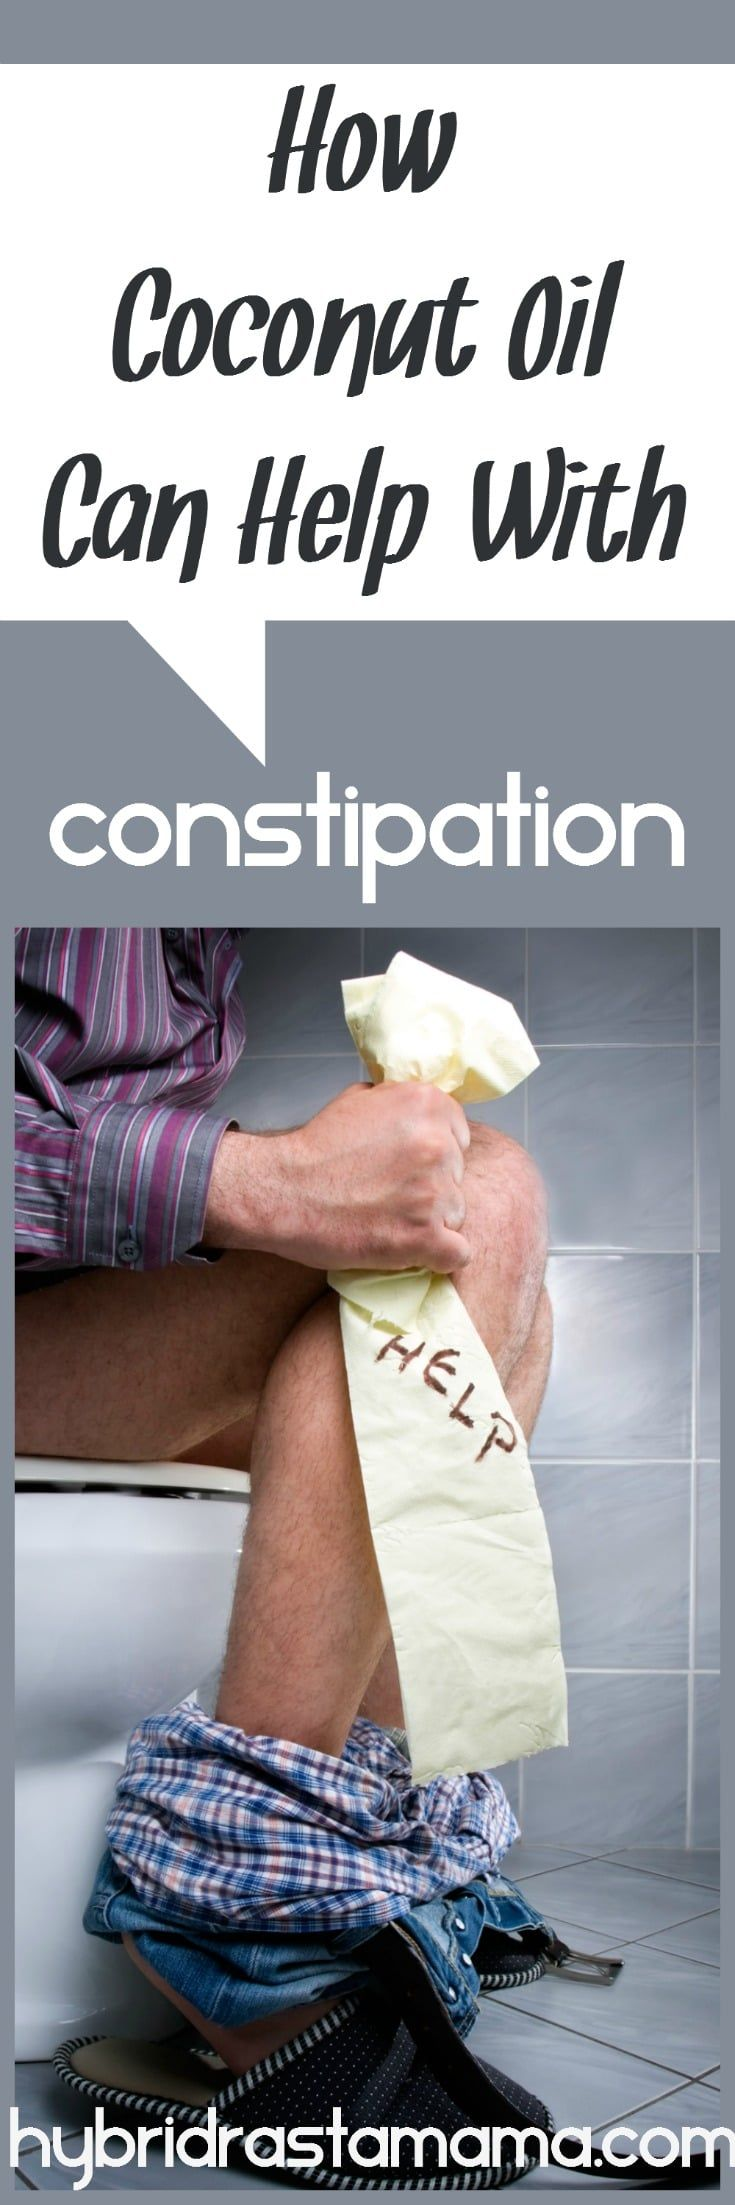 Coconut Oil for ConstipationDragonfire Nutrition